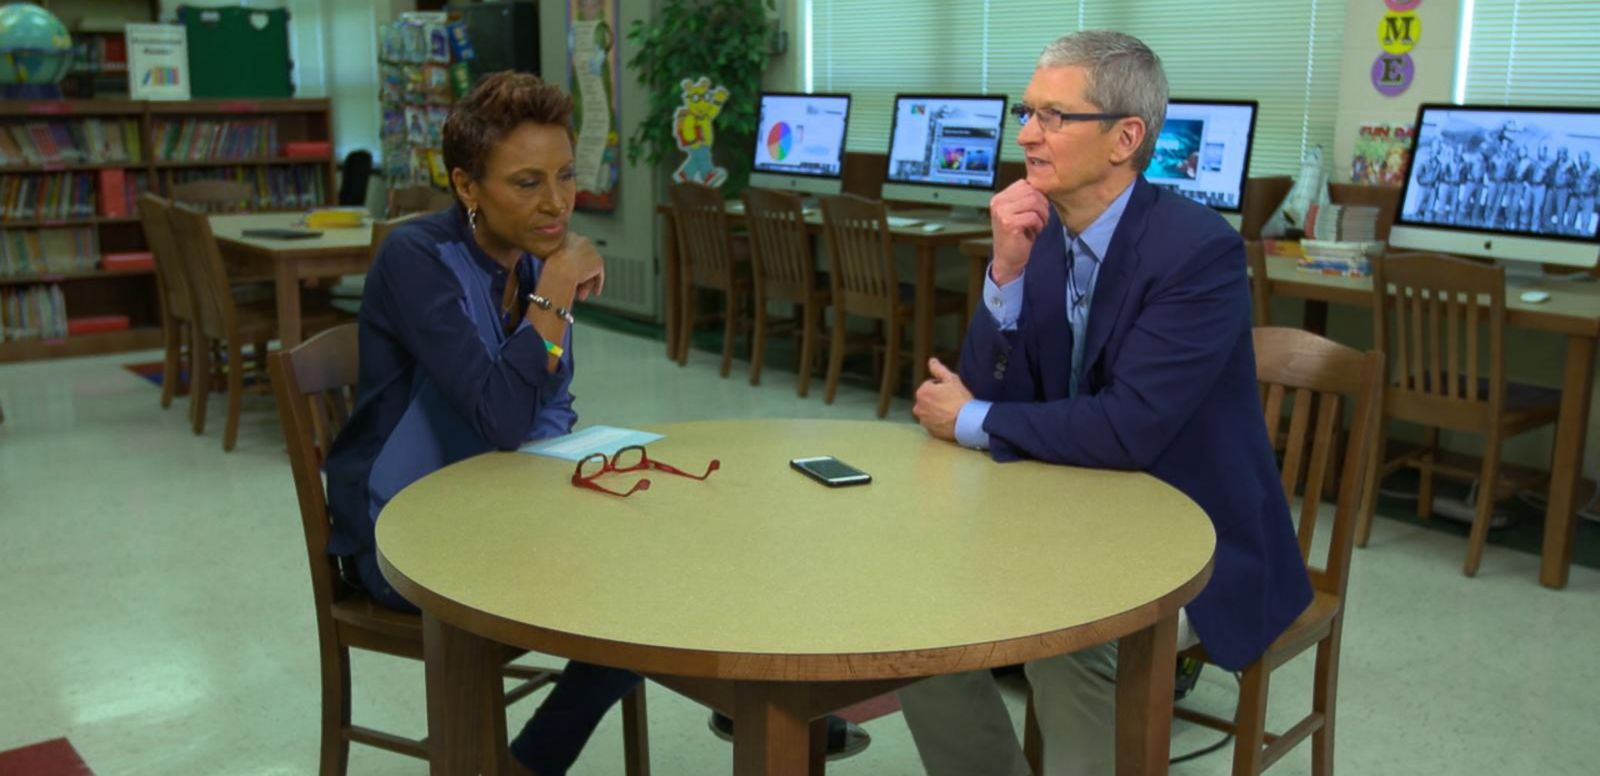 VIDEO: Apple's Tim Cook Shares His Playlist